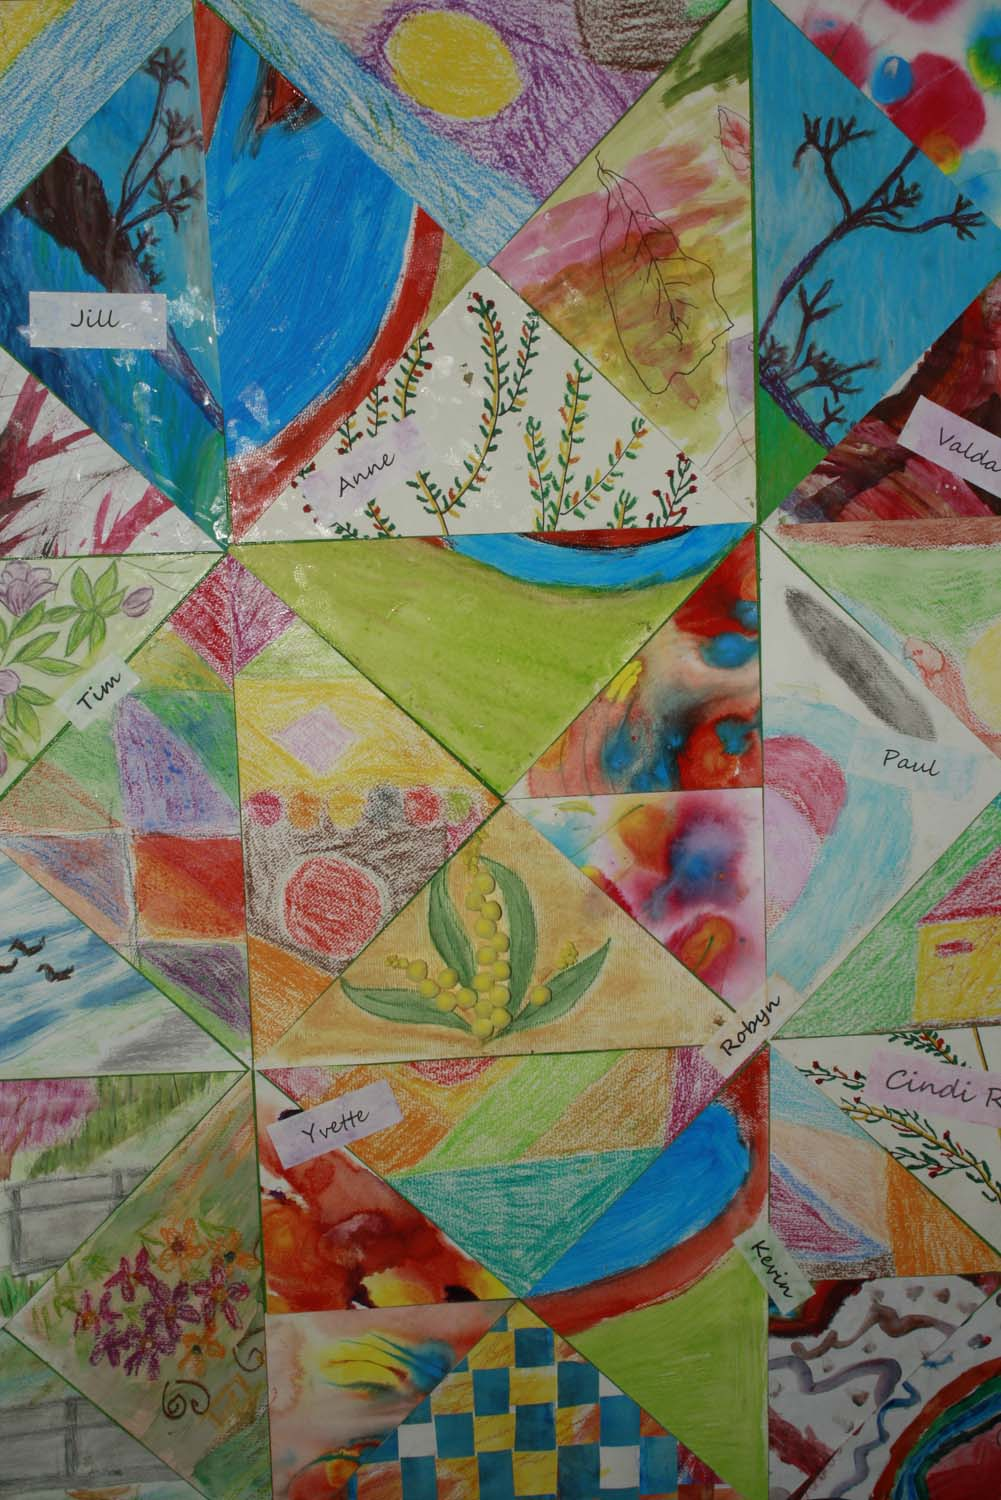 A friendship visual patchwork, by the No Boundaries visual art group